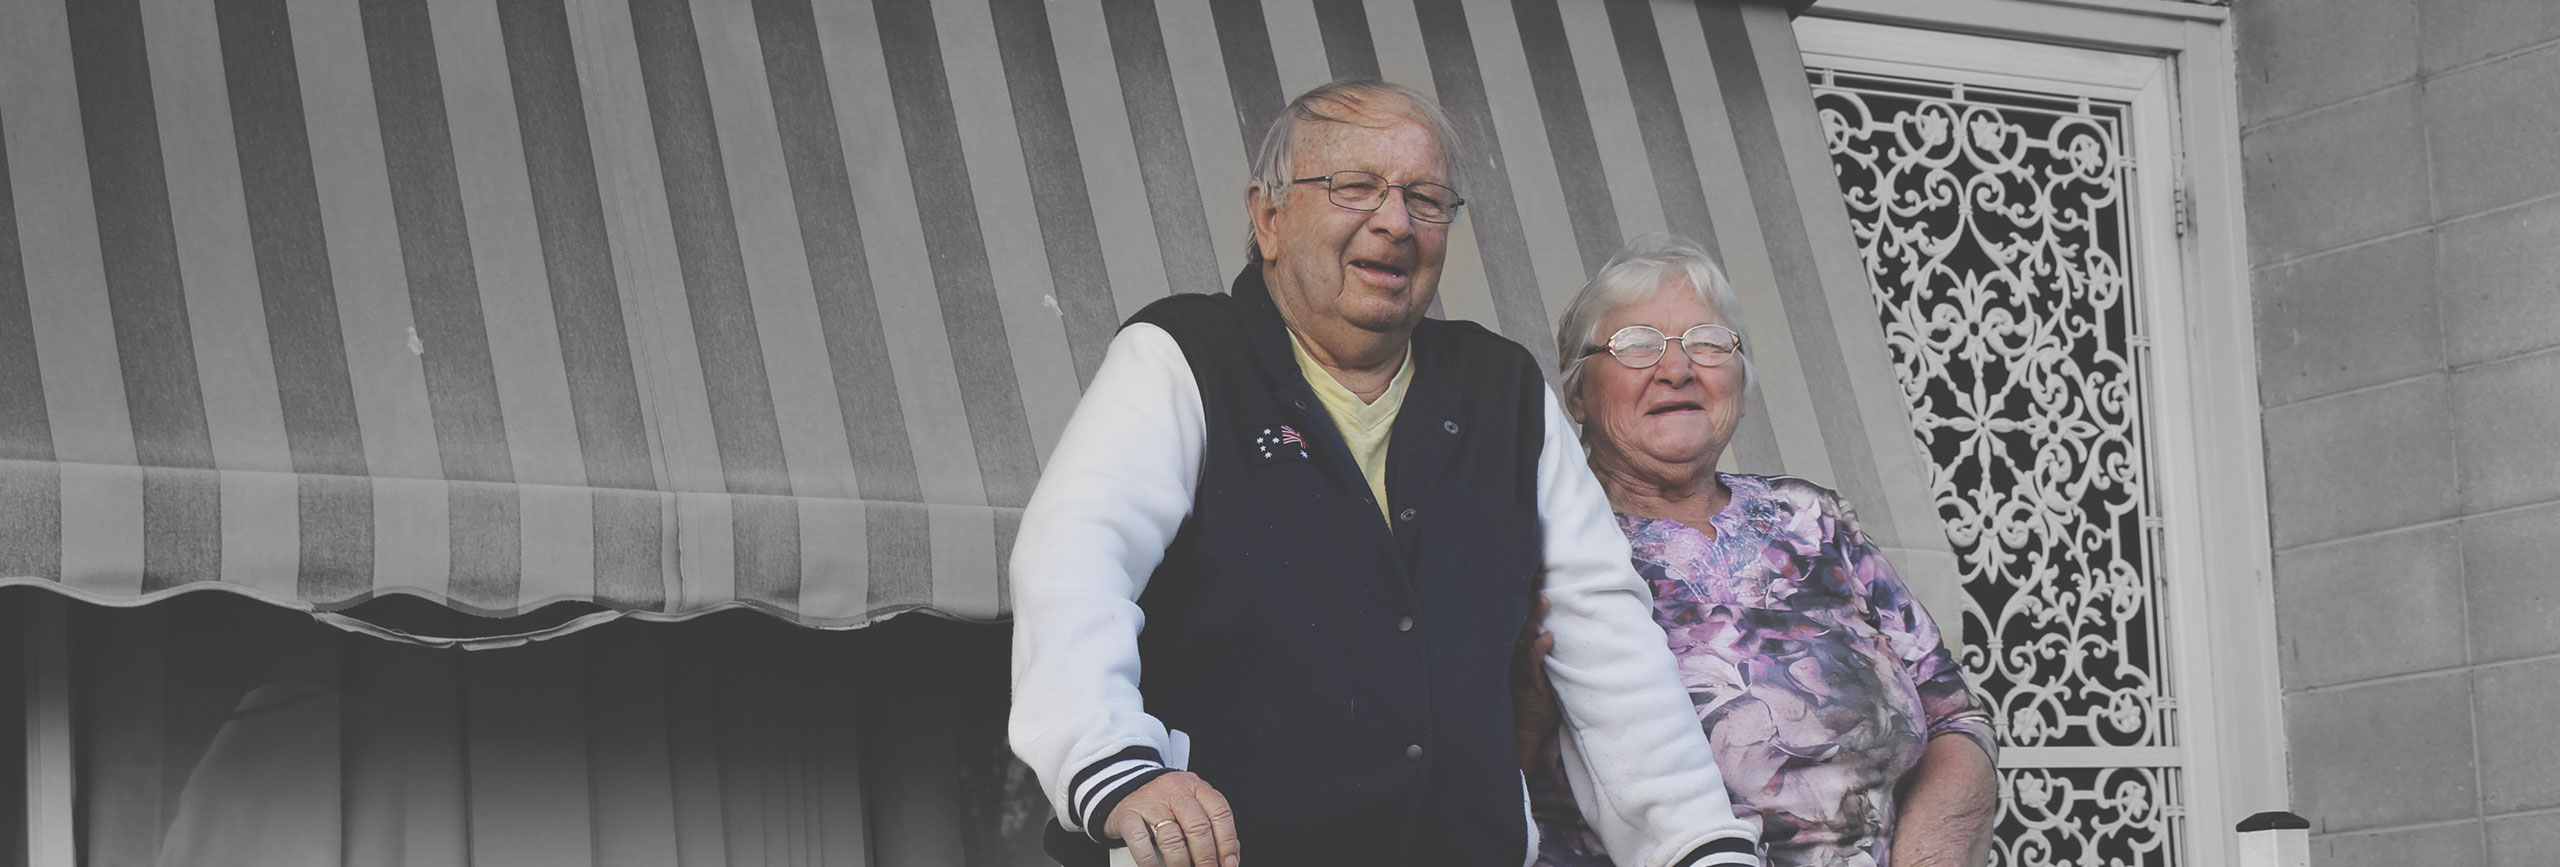 Elderly couple in North St Marys